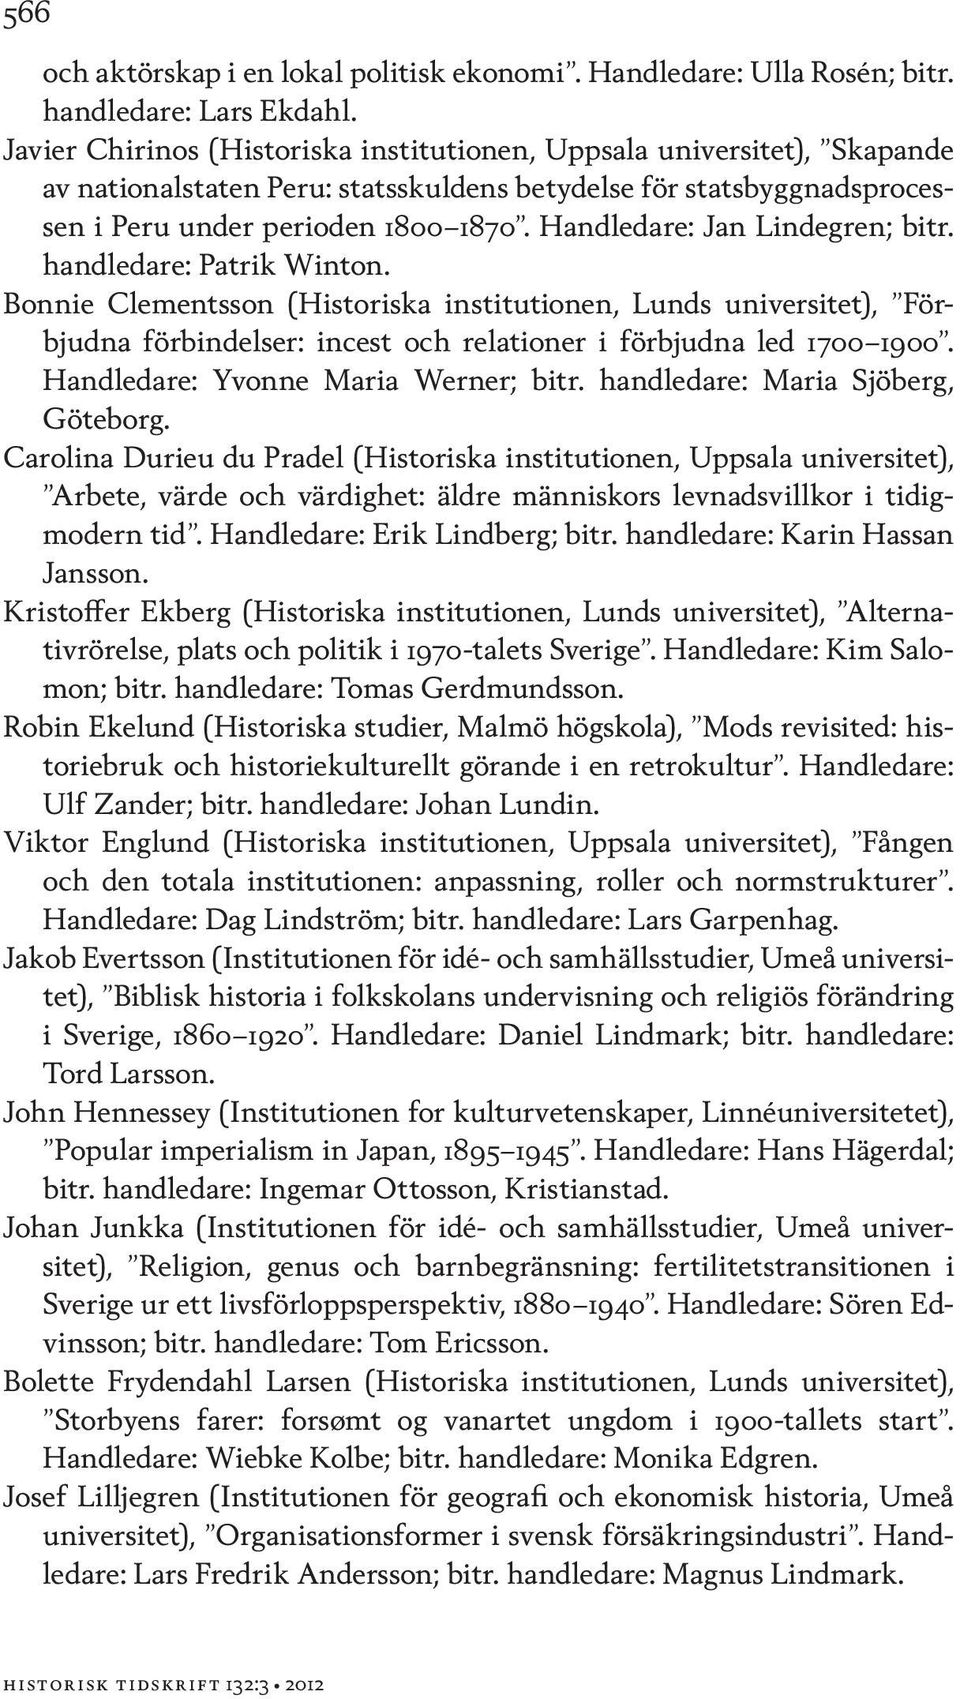 Handledare: Jan Lindegren; bitr. handledare: Patrik Winton. Bonnie Clementsson (Historiska institutionen, Lunds universitet), Förbjudna förbindelser: incest och relationer i förbjudna led 1700 1900.